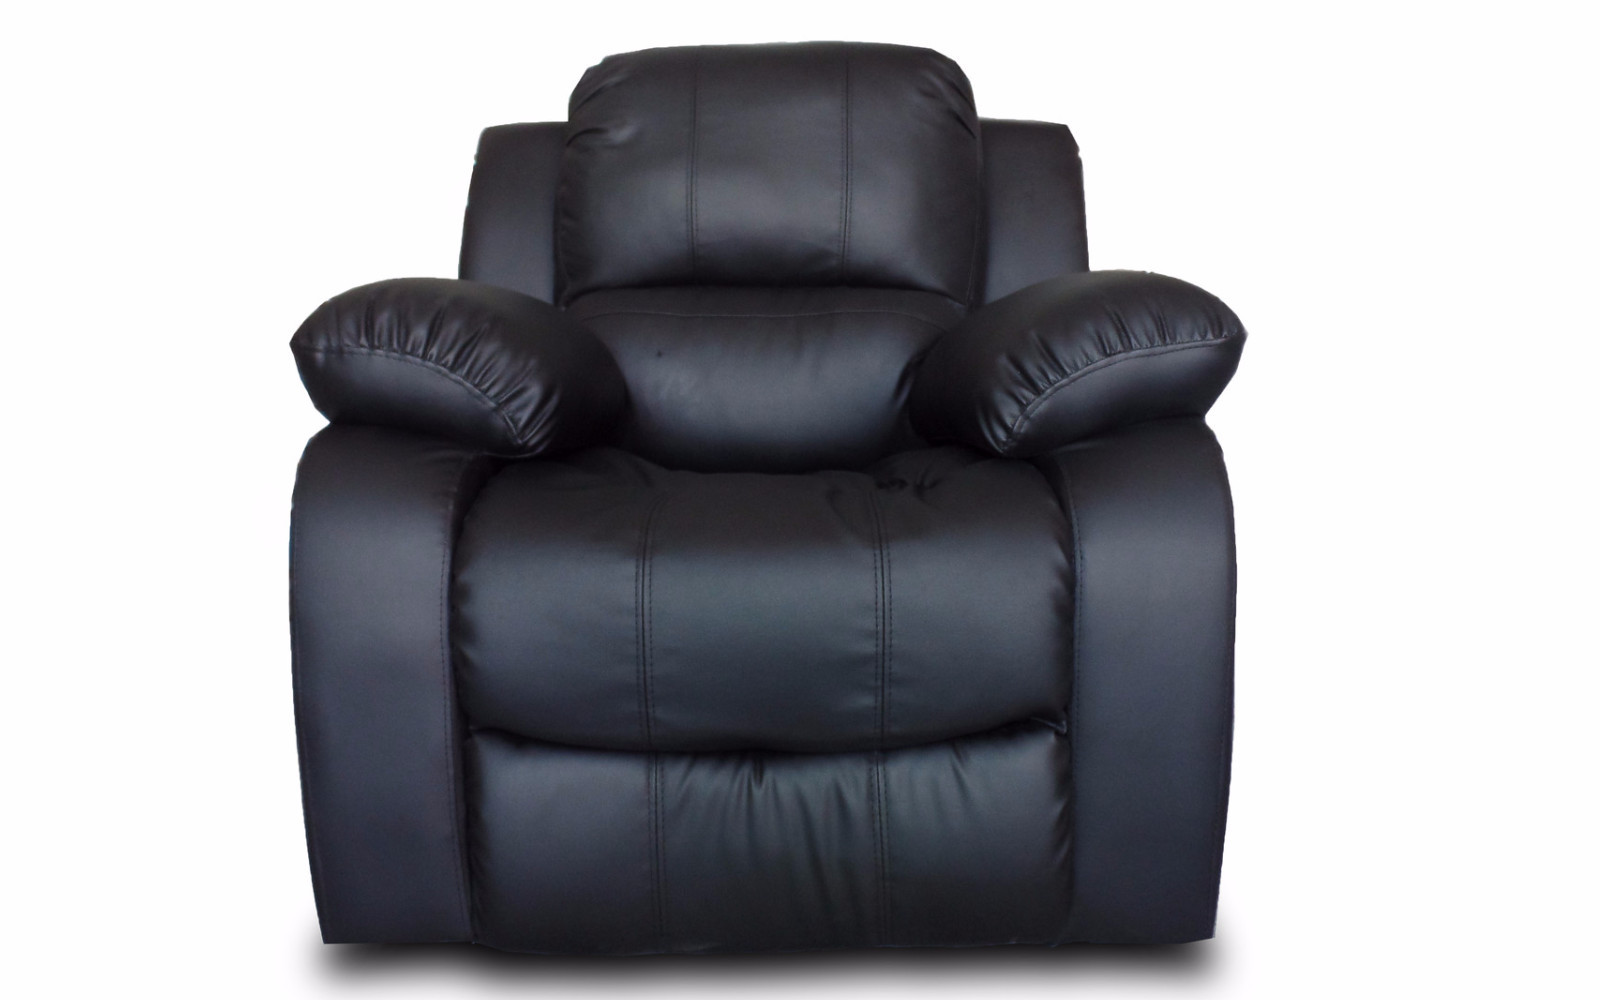 Classic Oversize and Overstuffed Single Seat Bonded Leather Recliner Chair - Walmart.com  sc 1 st  Walmart : cheap black leather chairs - Cheerinfomania.Com